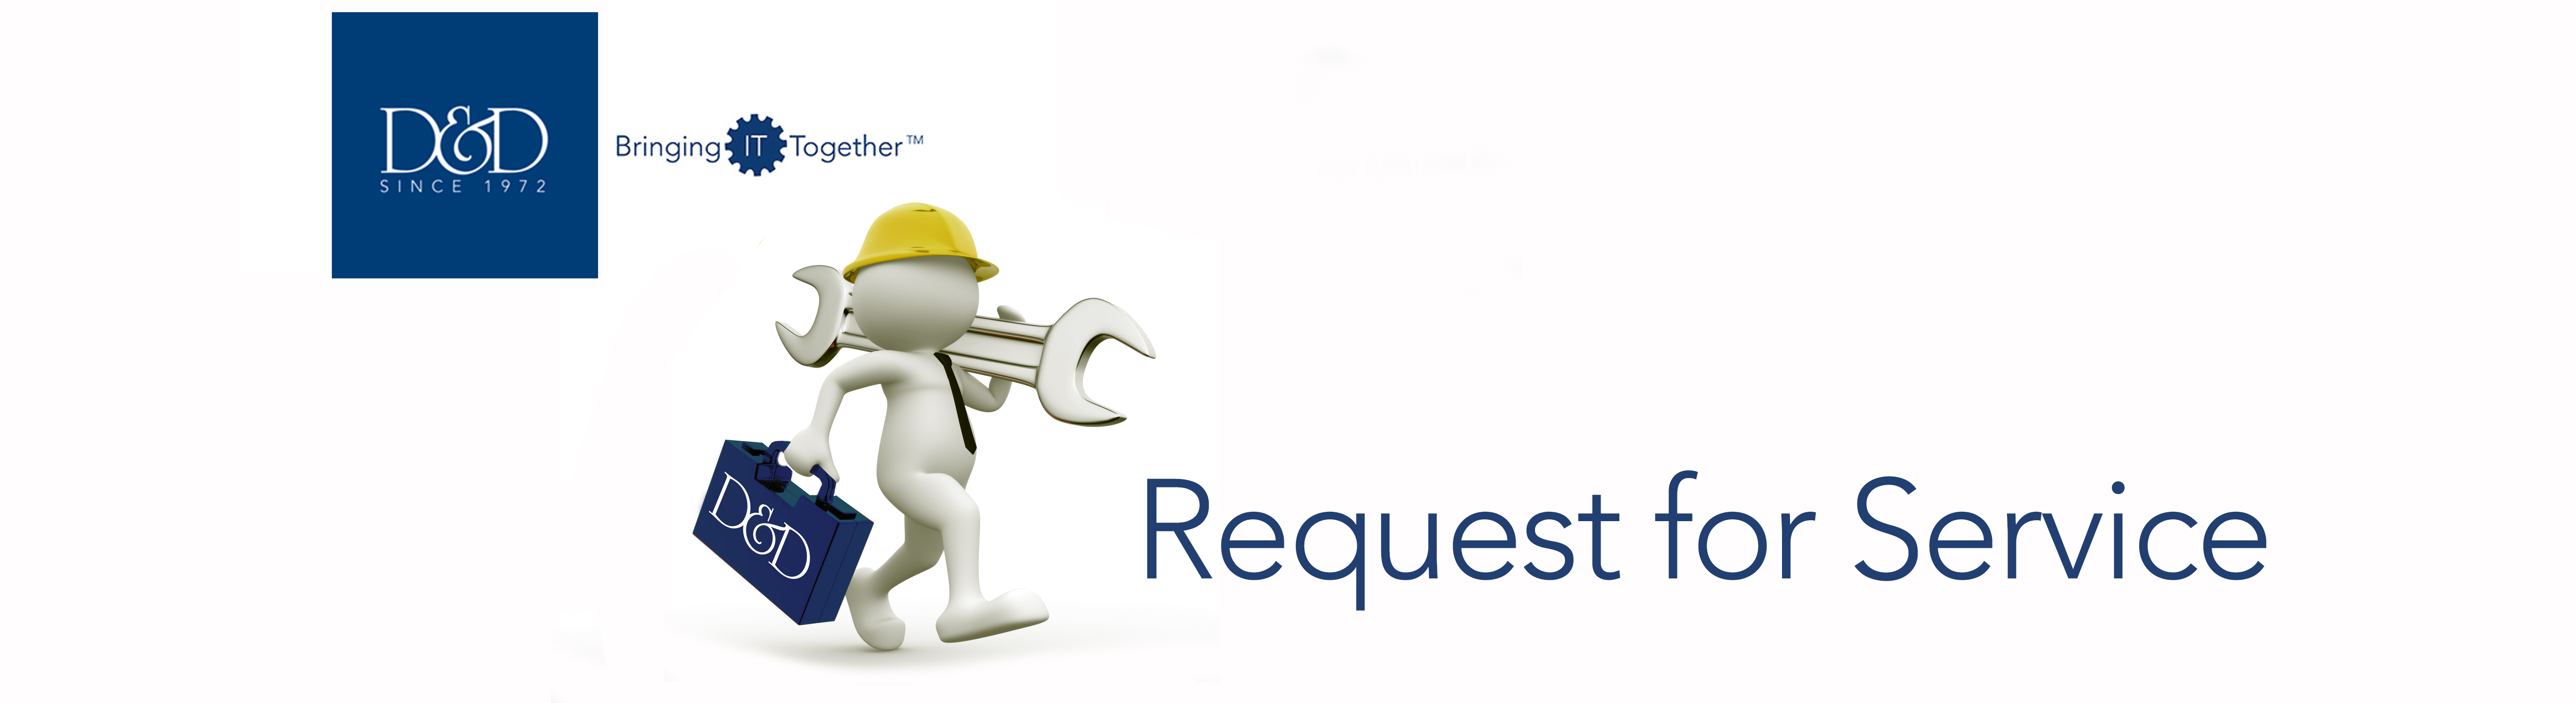 request-for-service